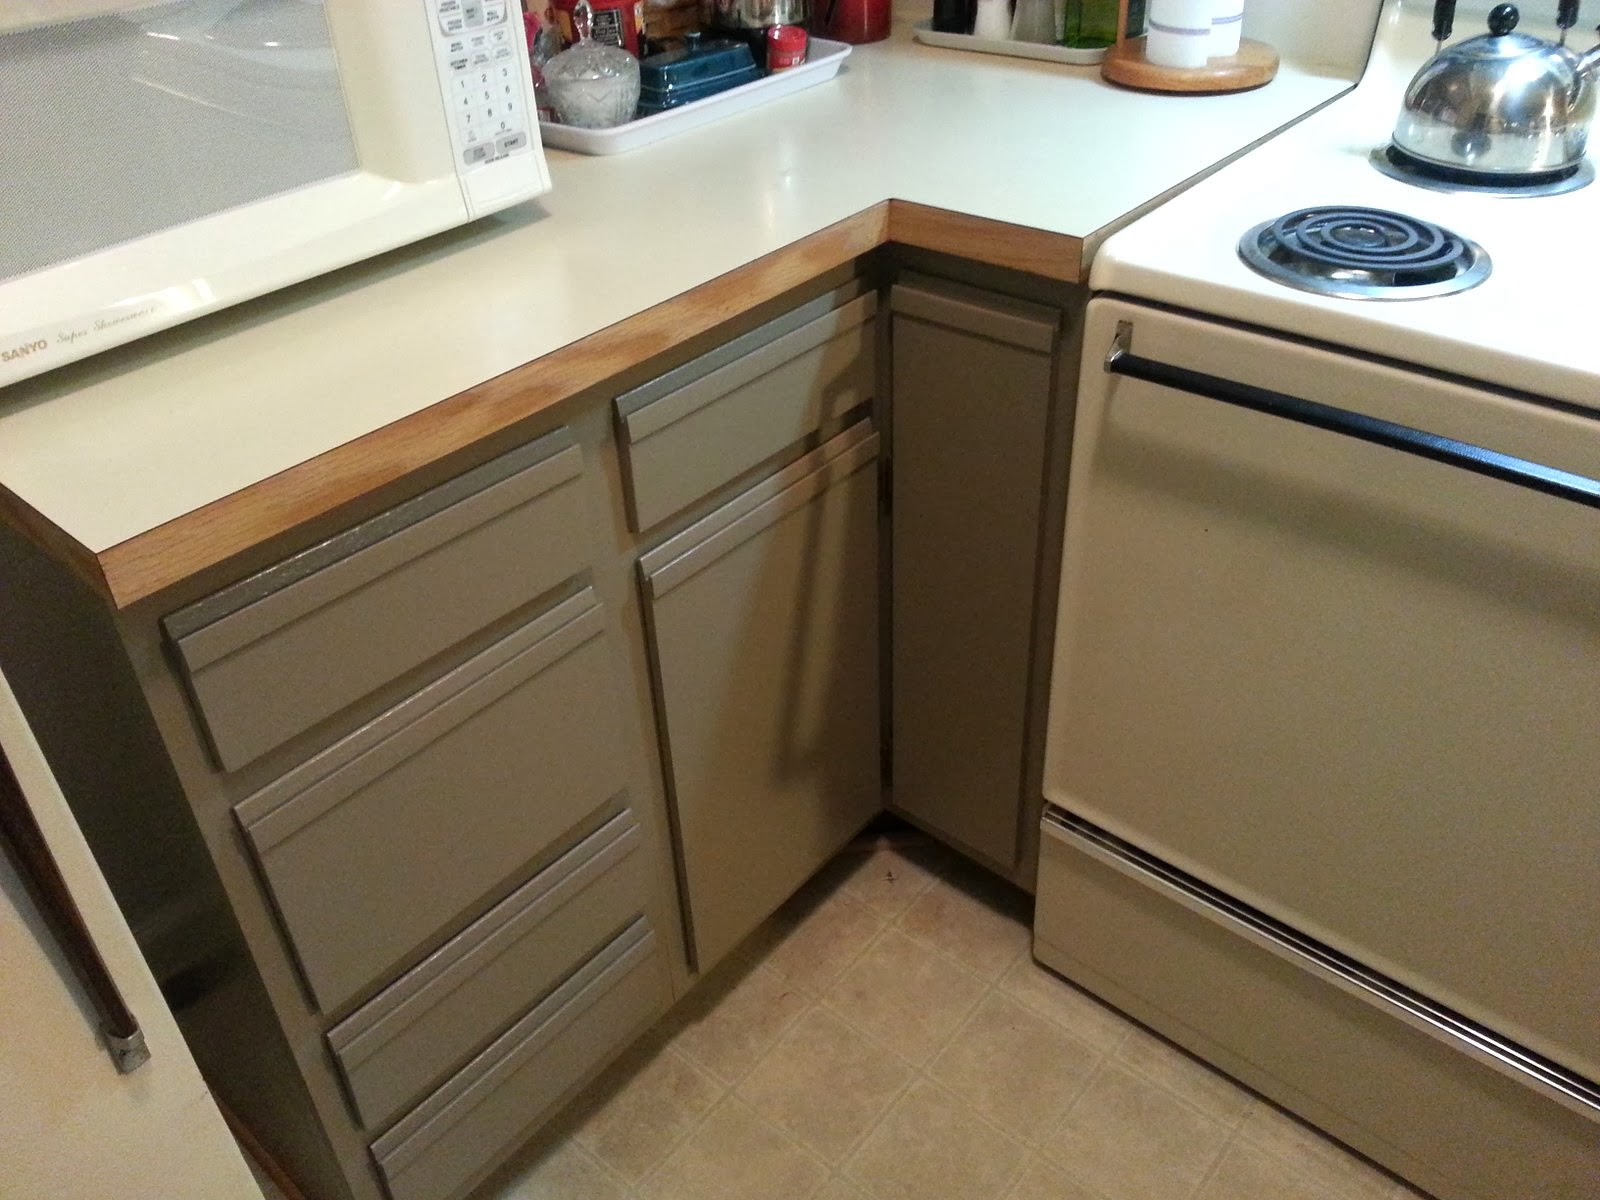 foobella designs: Painting Laminate Kitchen Cabinets. Done!